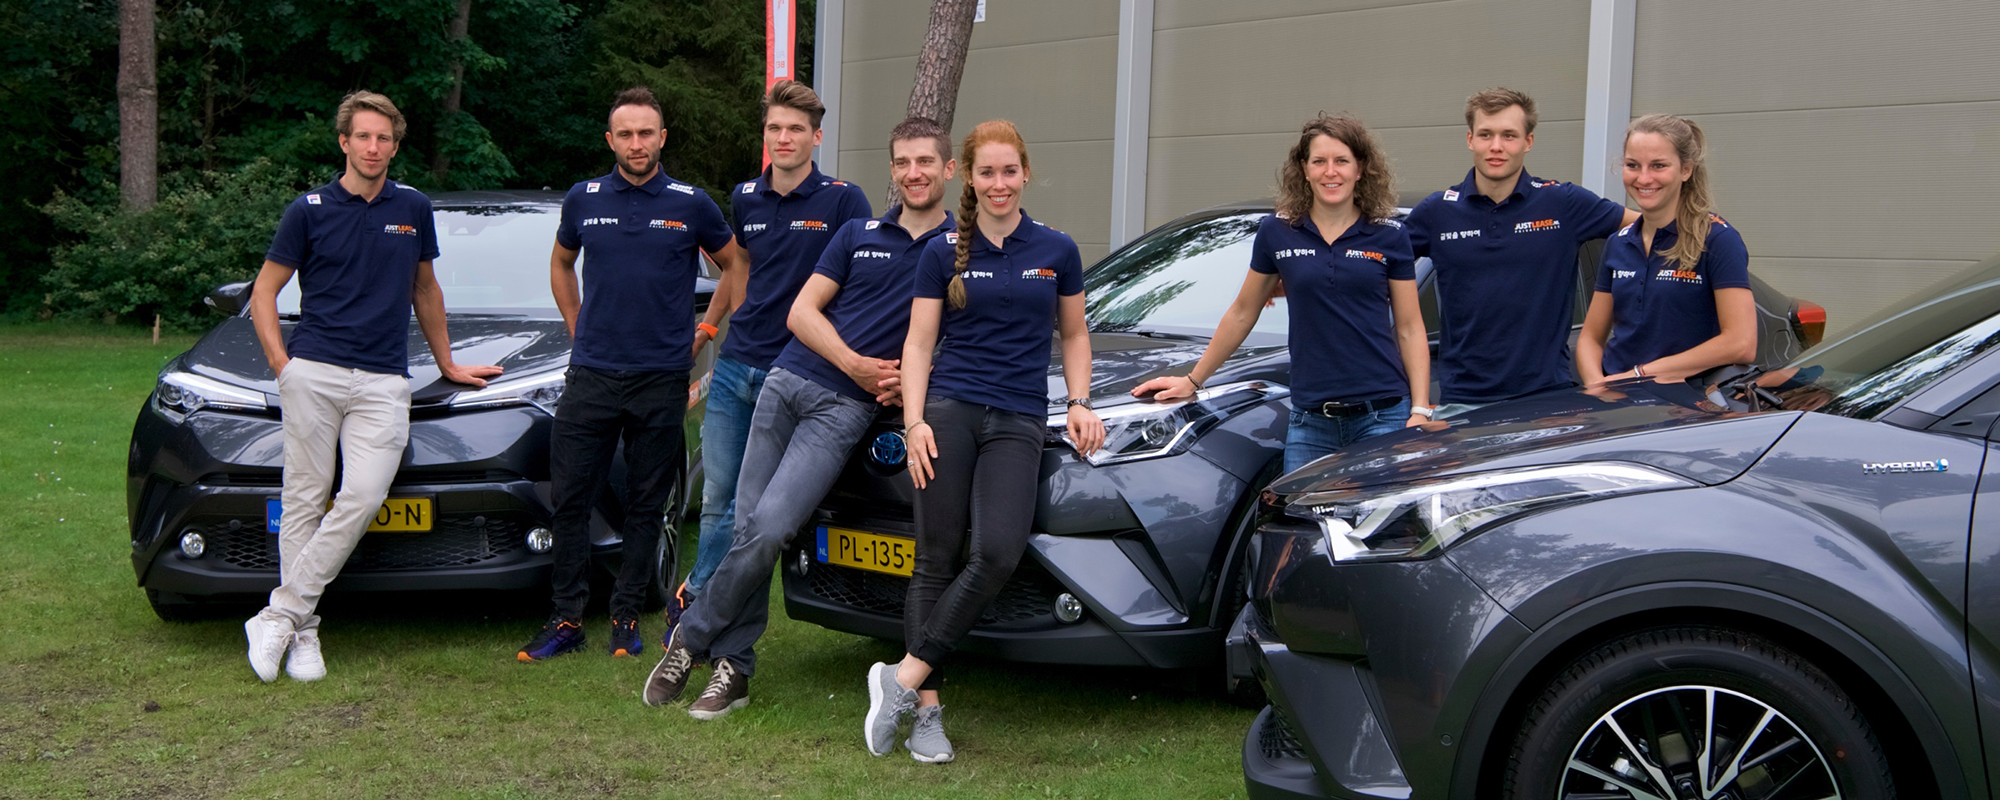 Topschaatsers Team JustLease.nl stappen in hybride Toyota's